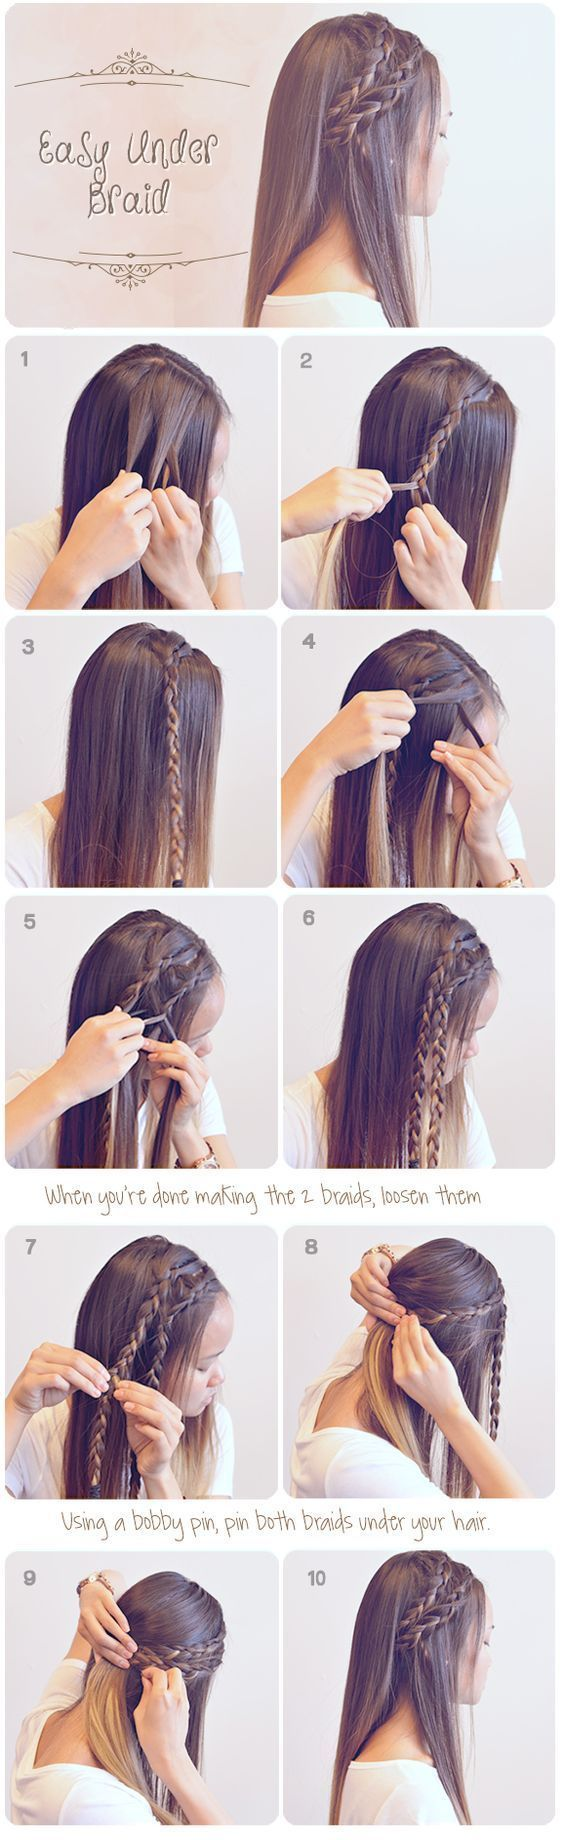 best best braided hairstyles images on pinterest